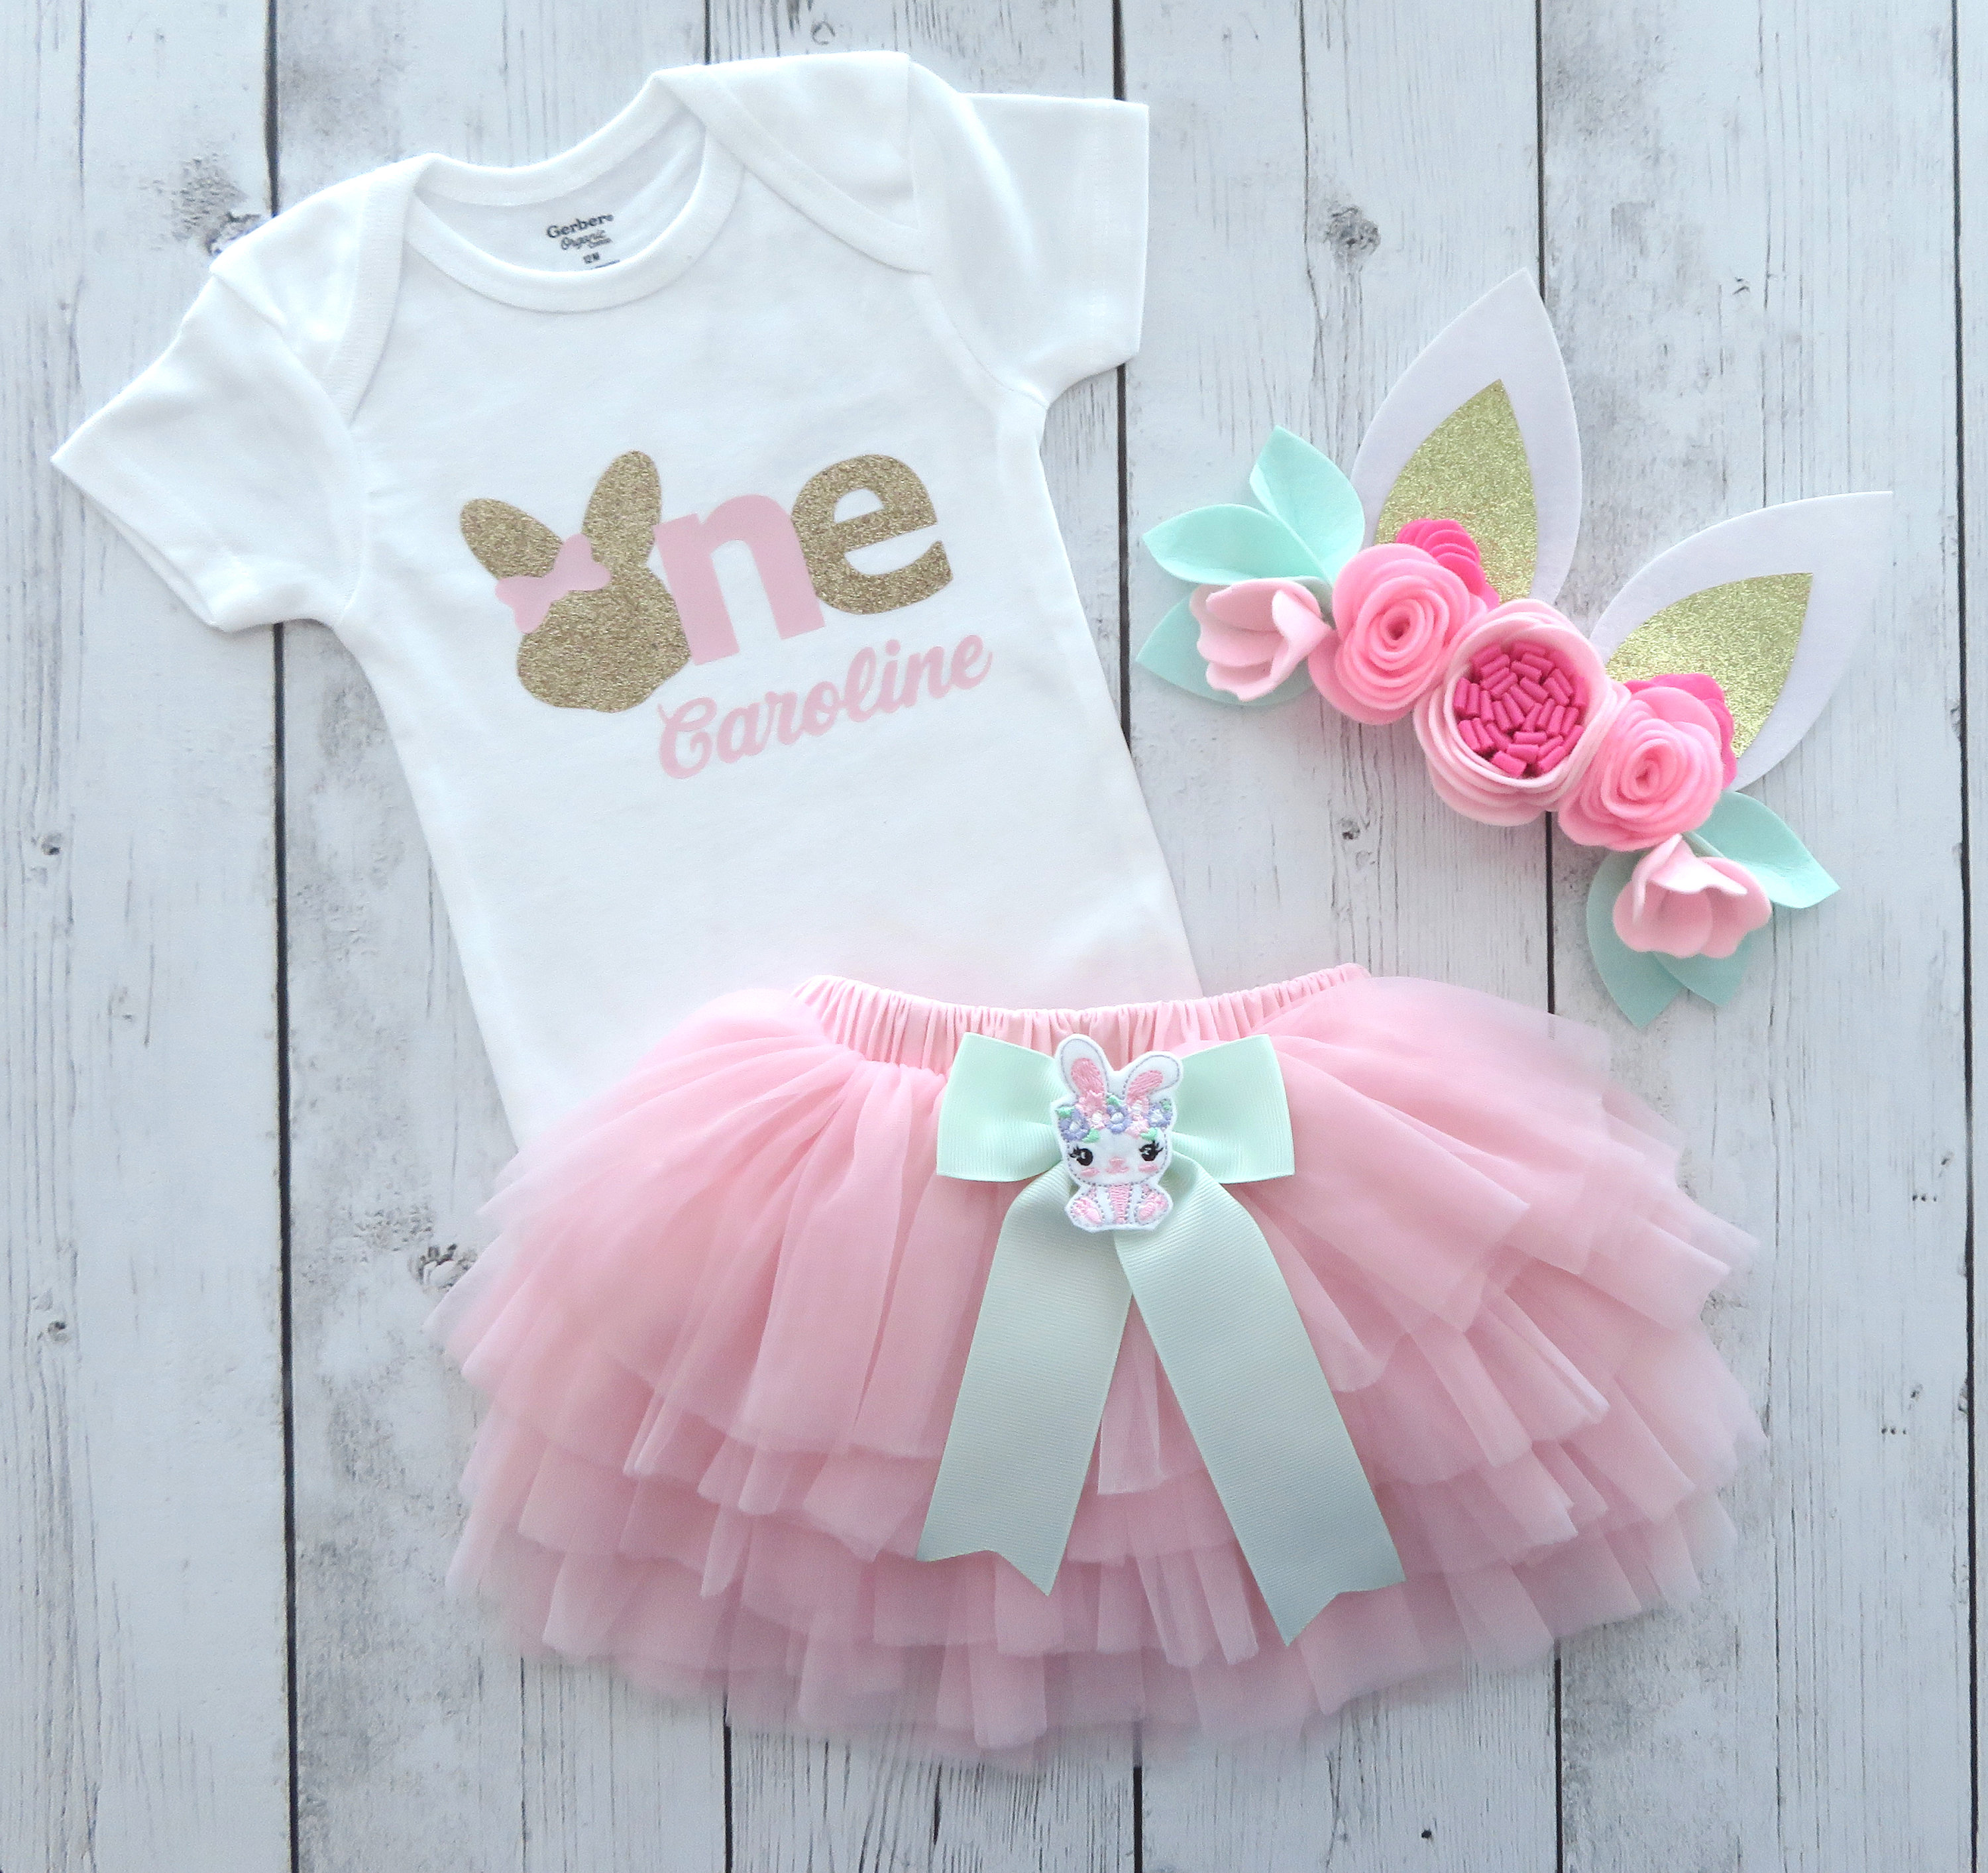 Bunny First Birthday Outfit in pink, mint and gold - bunny ears headband, bunny shoes, 1st birthday tutu bloomers, personalized 1st birthday